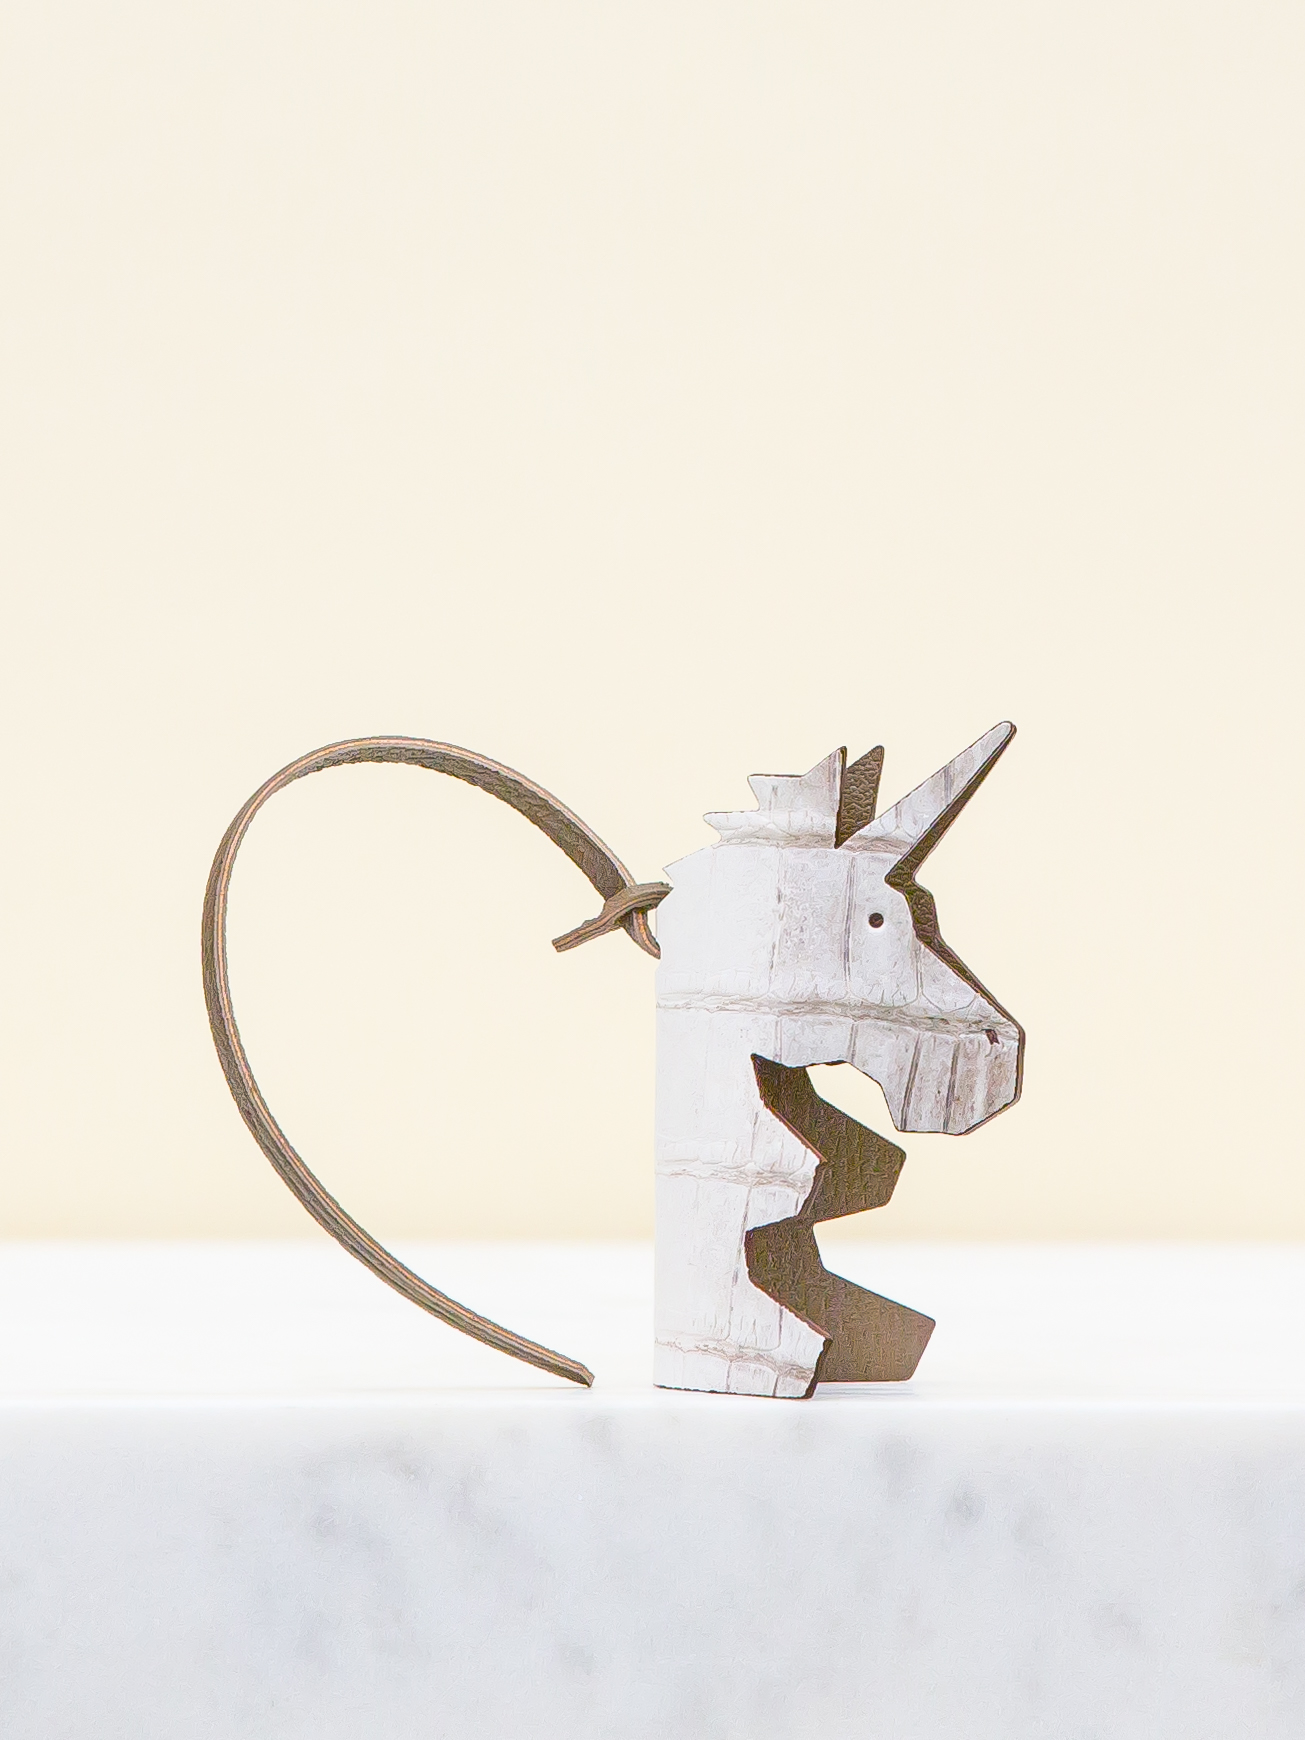 Magique Bag Charm - White/Brown by Chance Mystère on curated-crowd.com